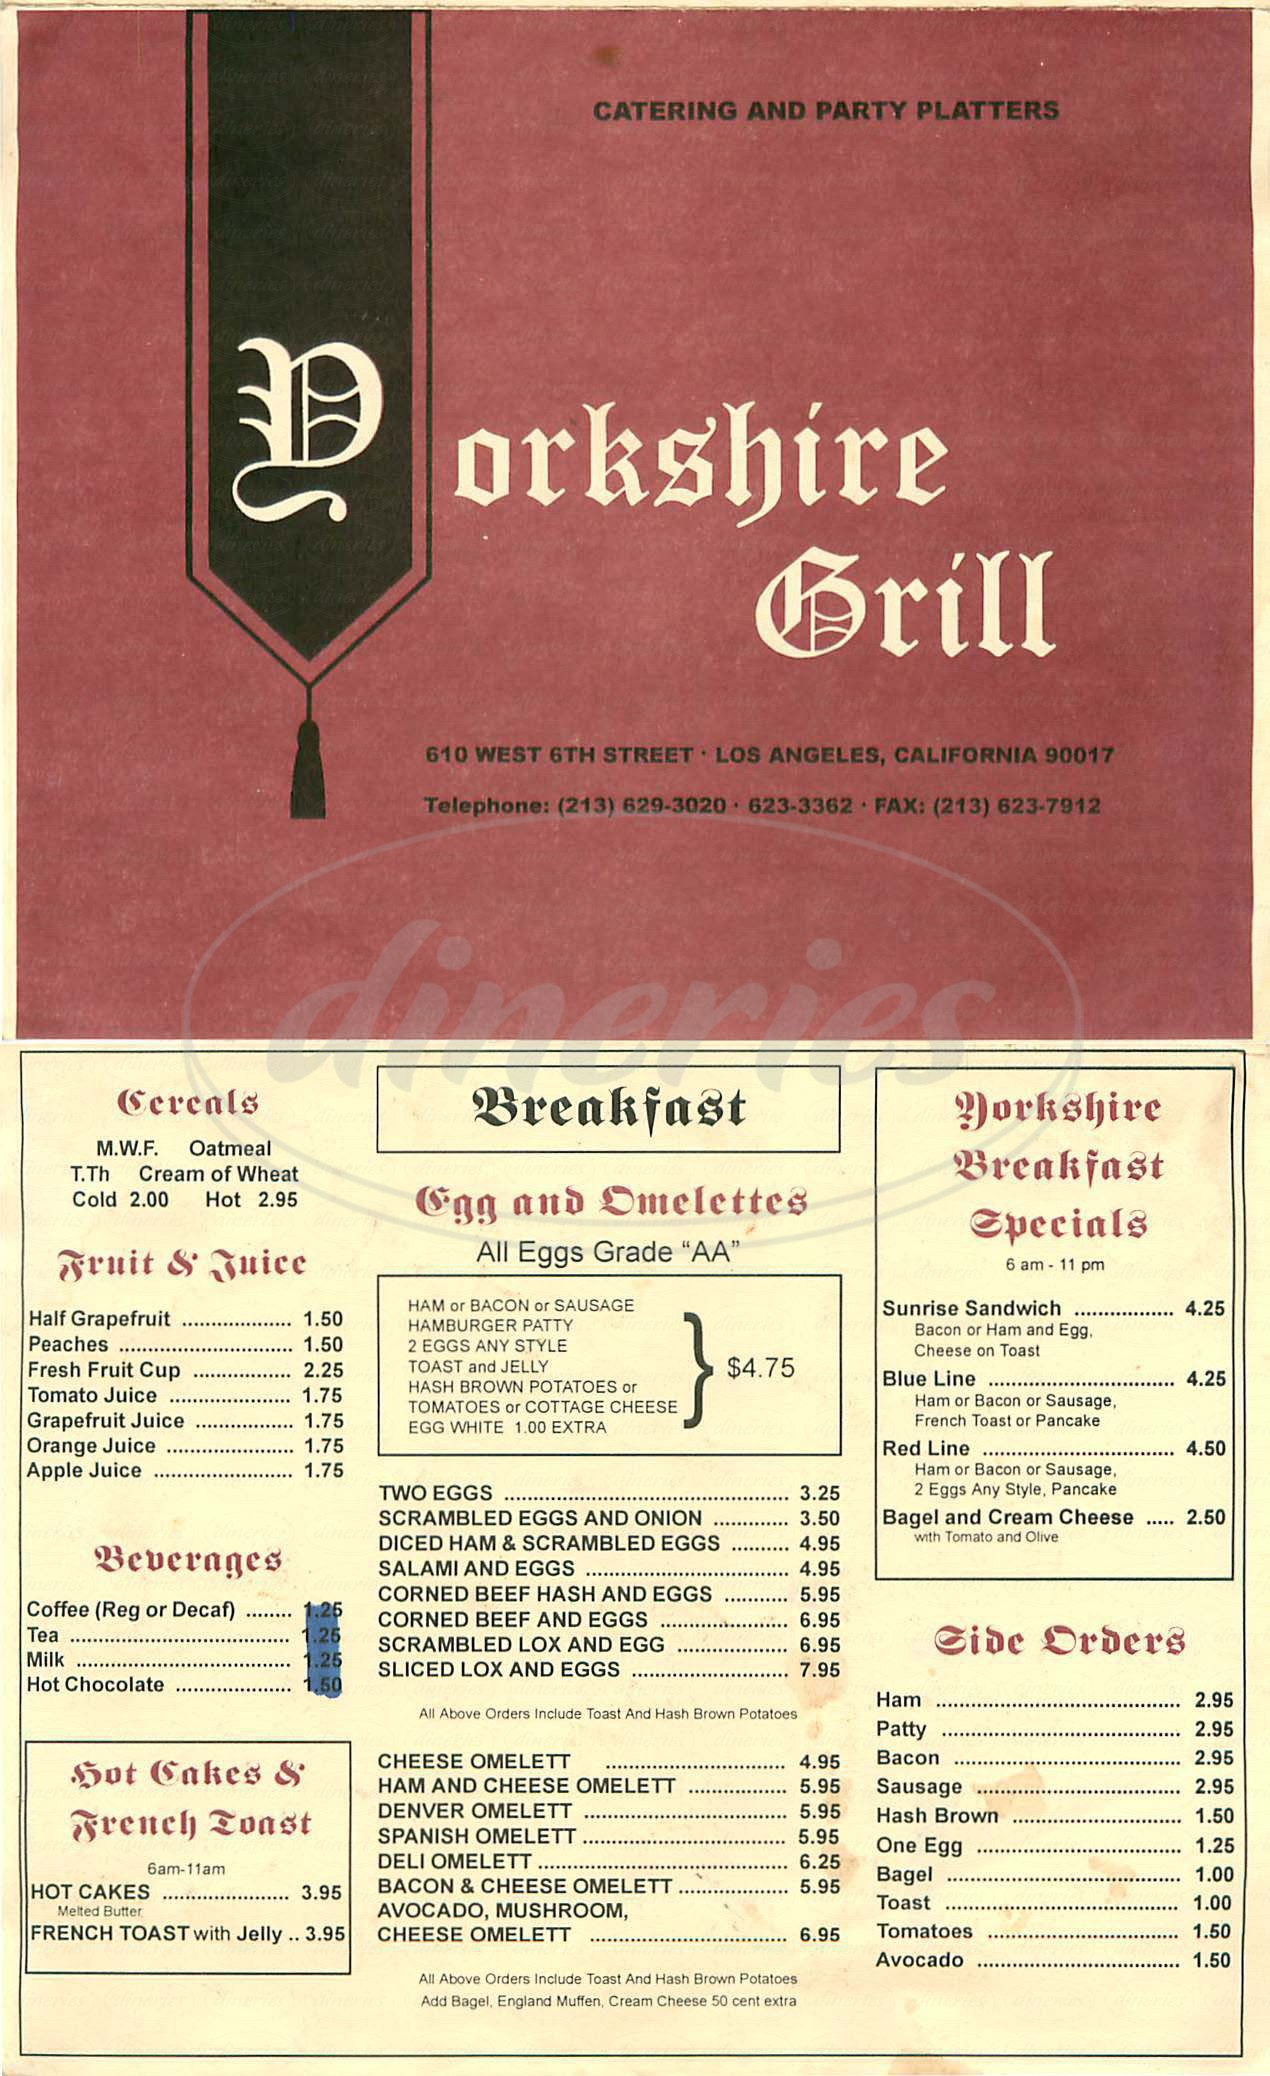 menu for Yorkshire Grill